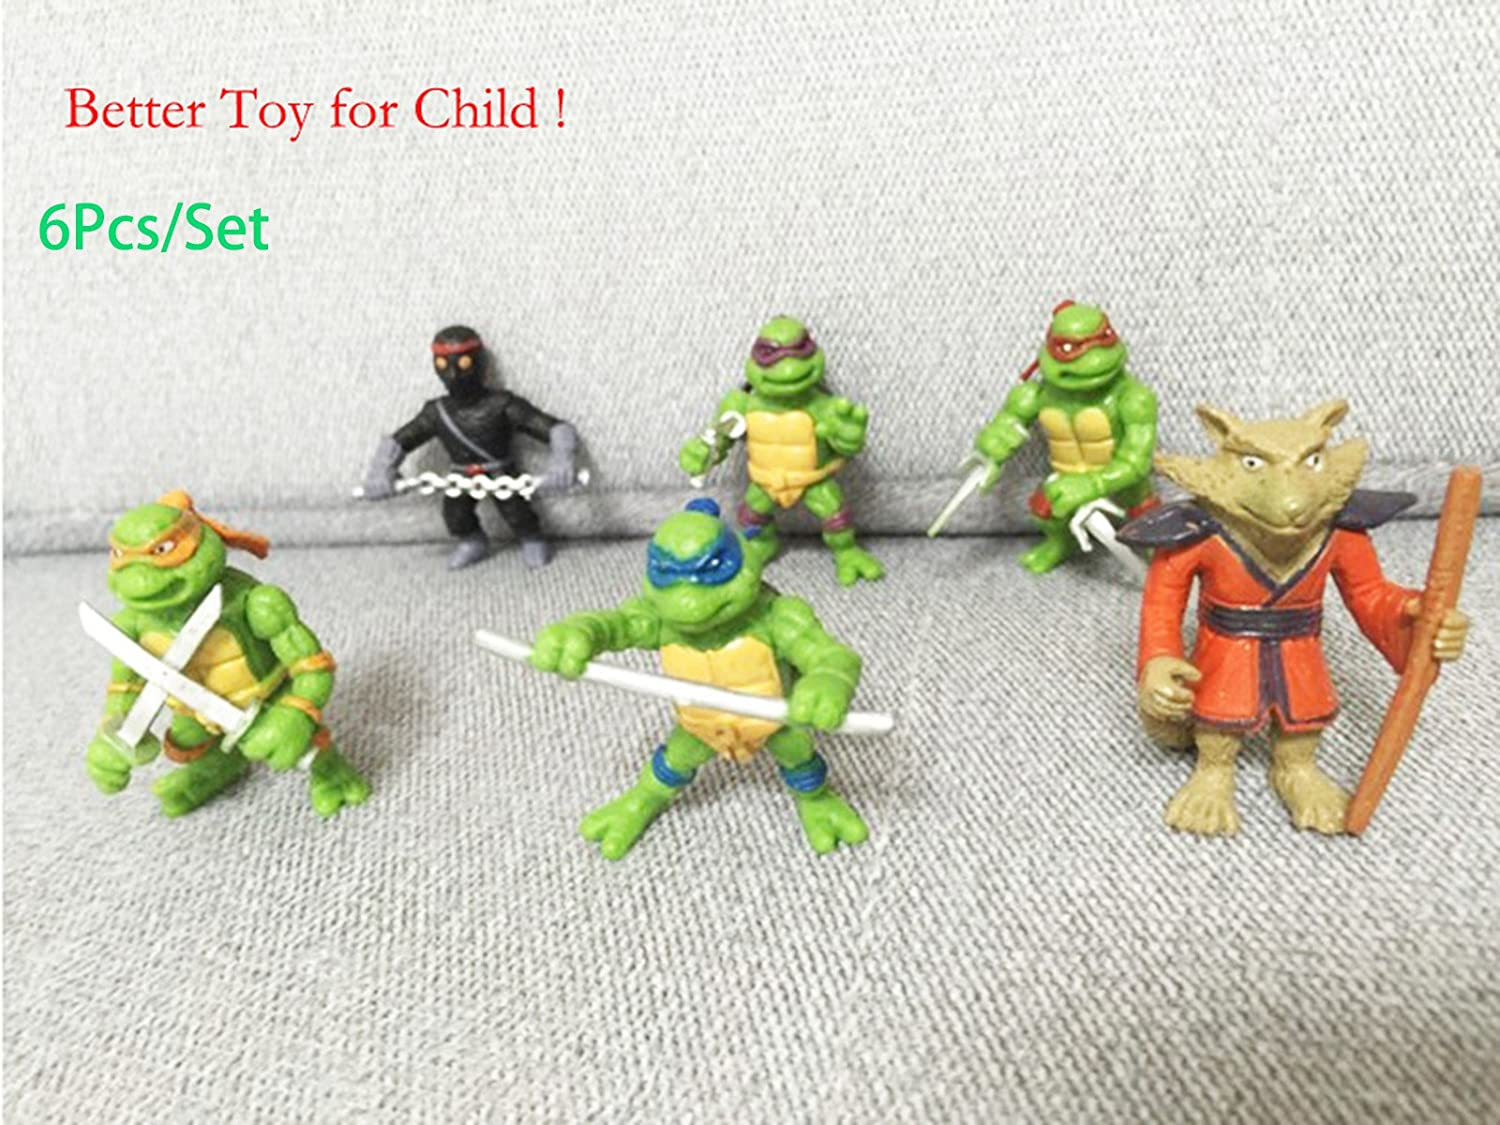 Amazon.com: 6 Pcs/Set Teenage Mutant Ninja Turtles Child Boy Toy ...